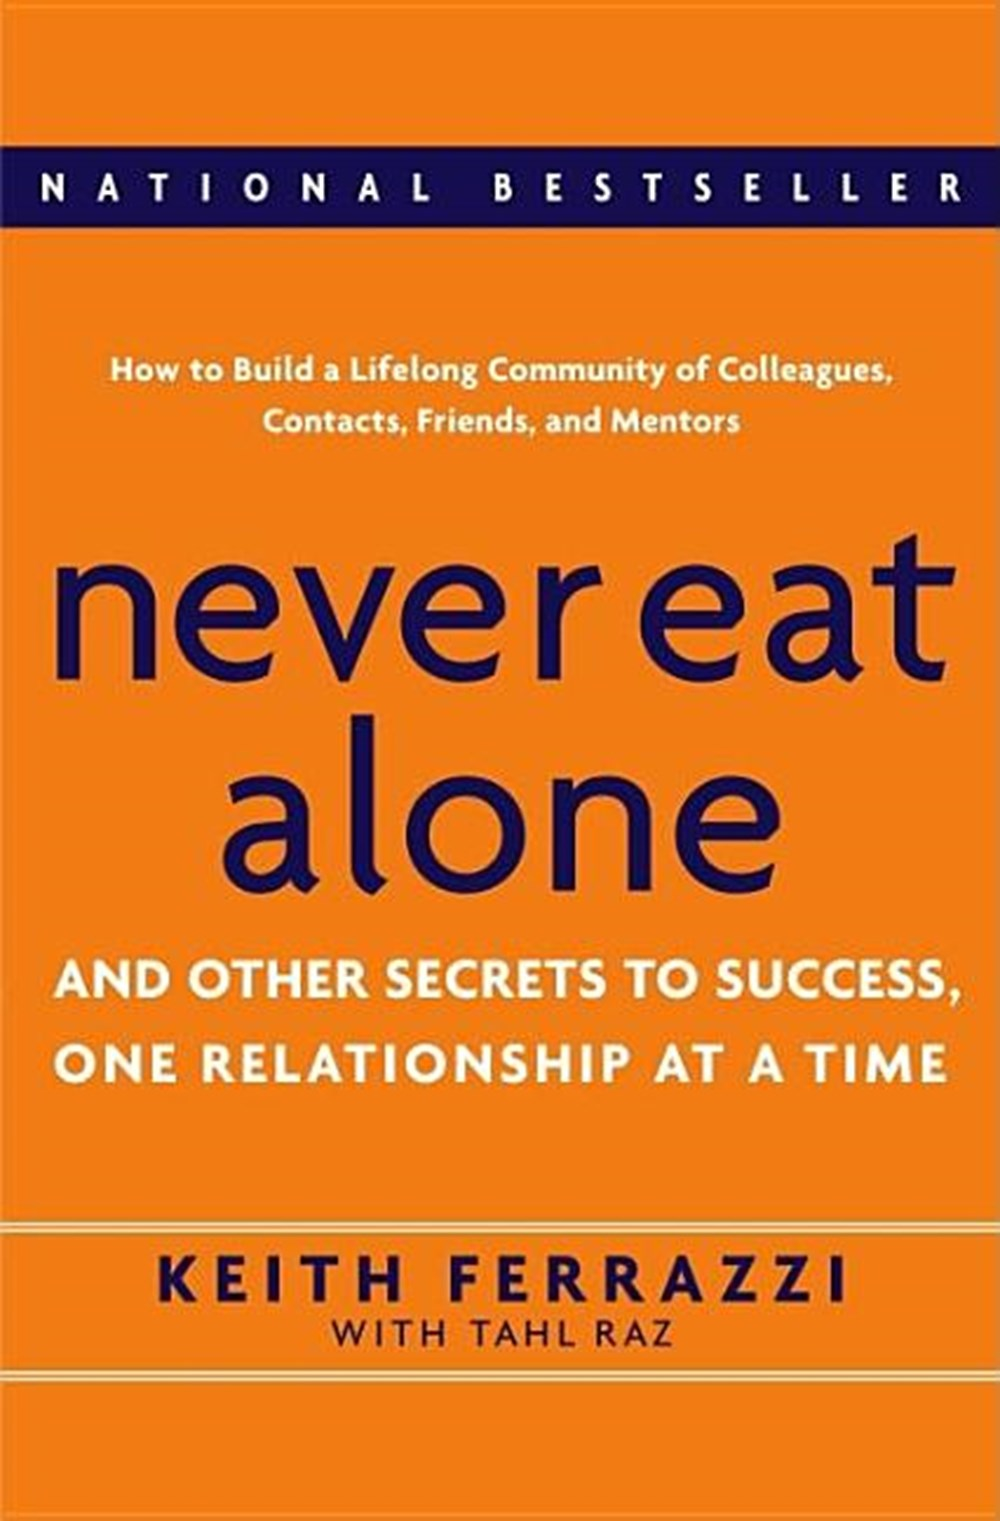 Never Eat Alone And Other Secrets to Success, One Relationship at a Time